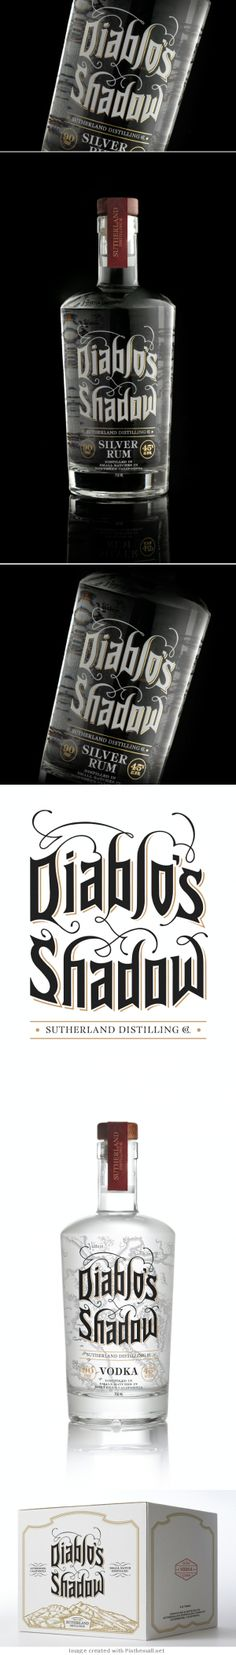 Diablo's Shadow  I'd drink it just for the name